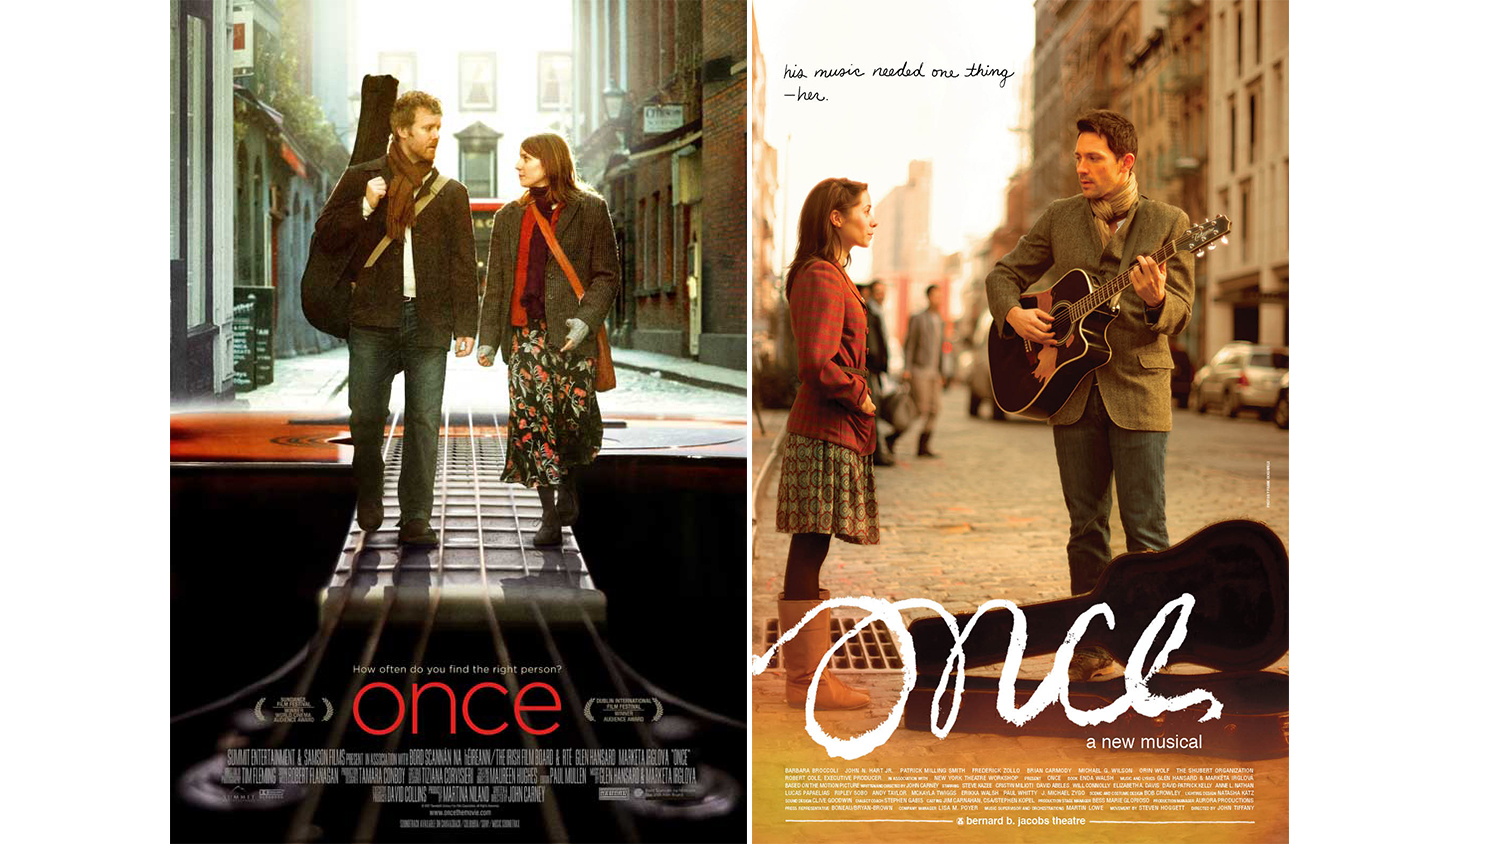 Once (2012)